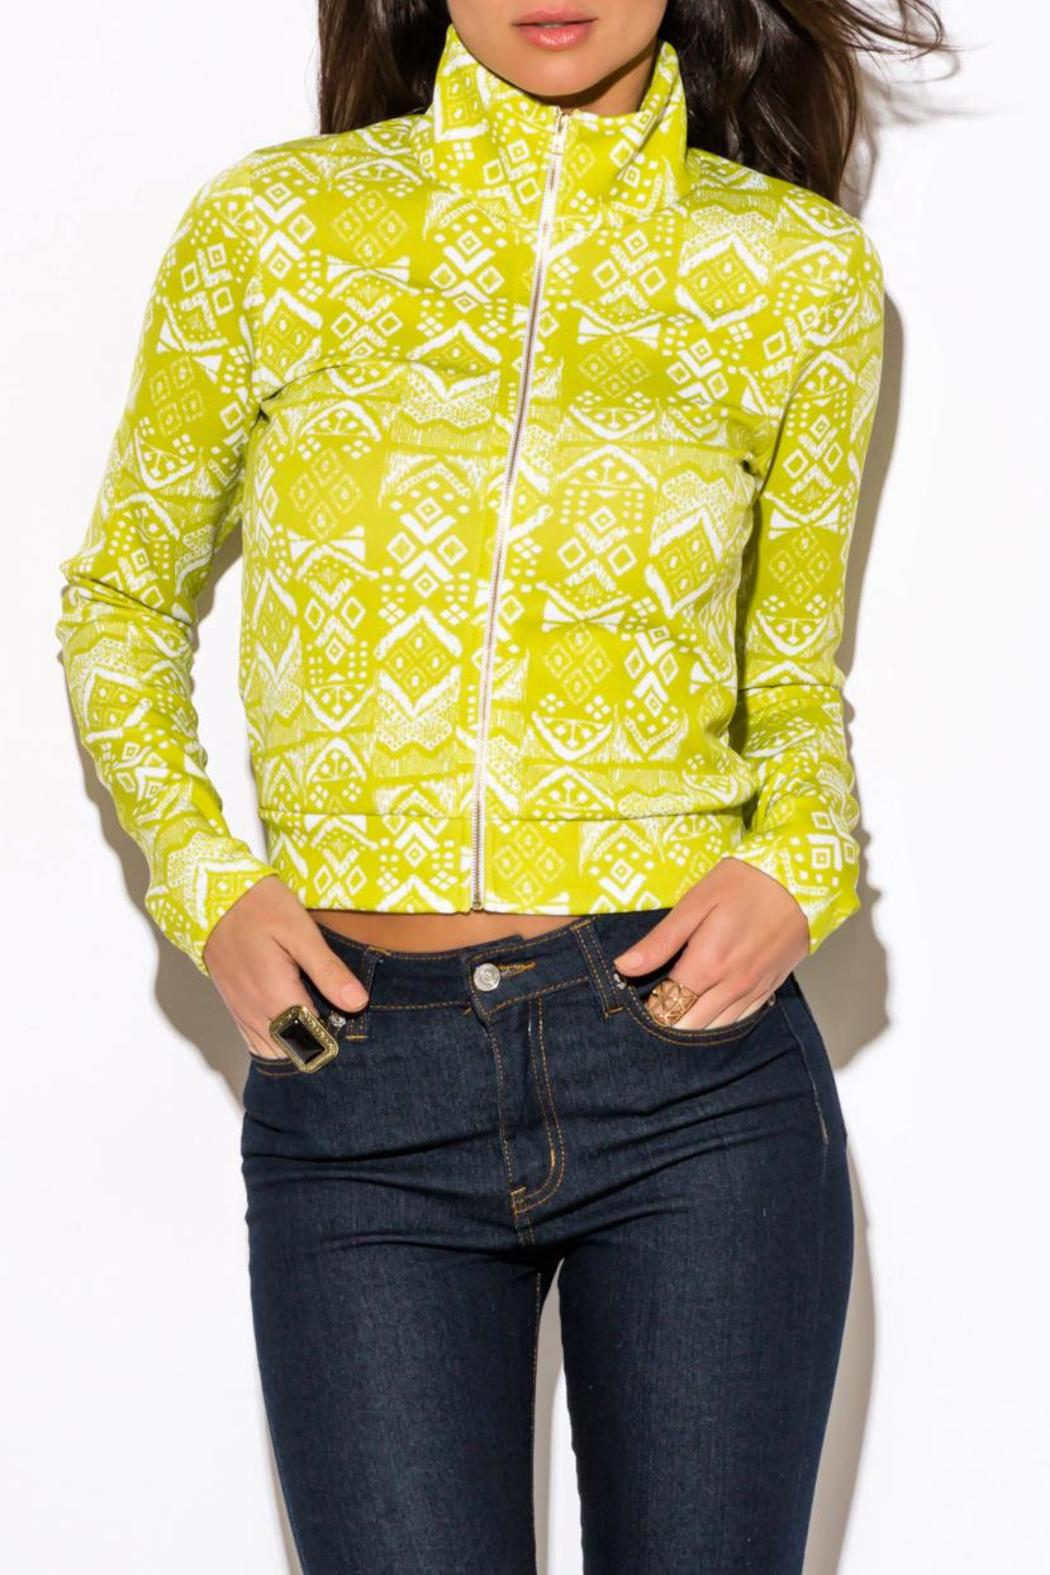 W by Wenjie Lime Green Jacket from Illinois by Bridal Elegance